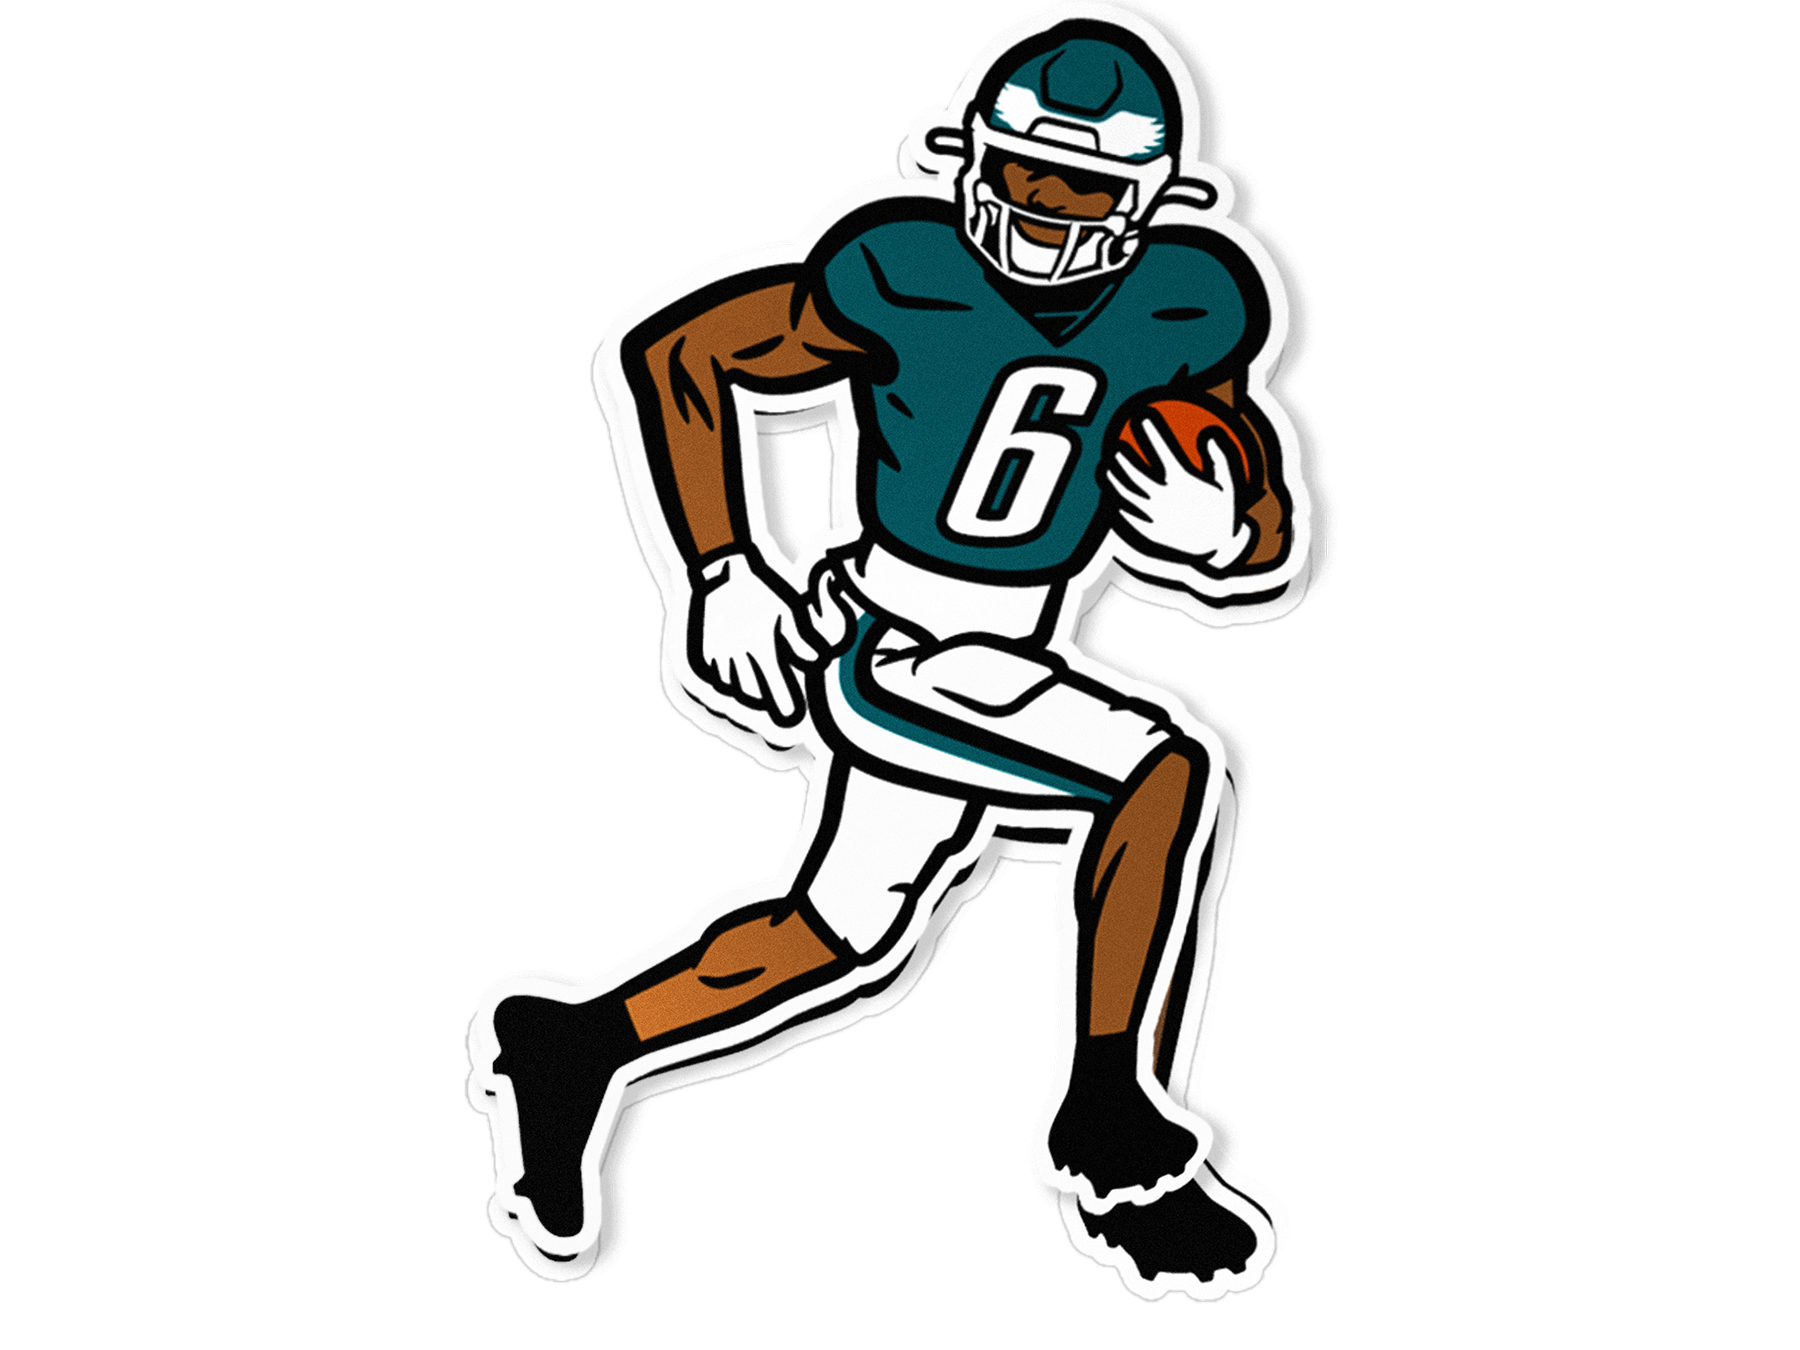 Downfield Decal